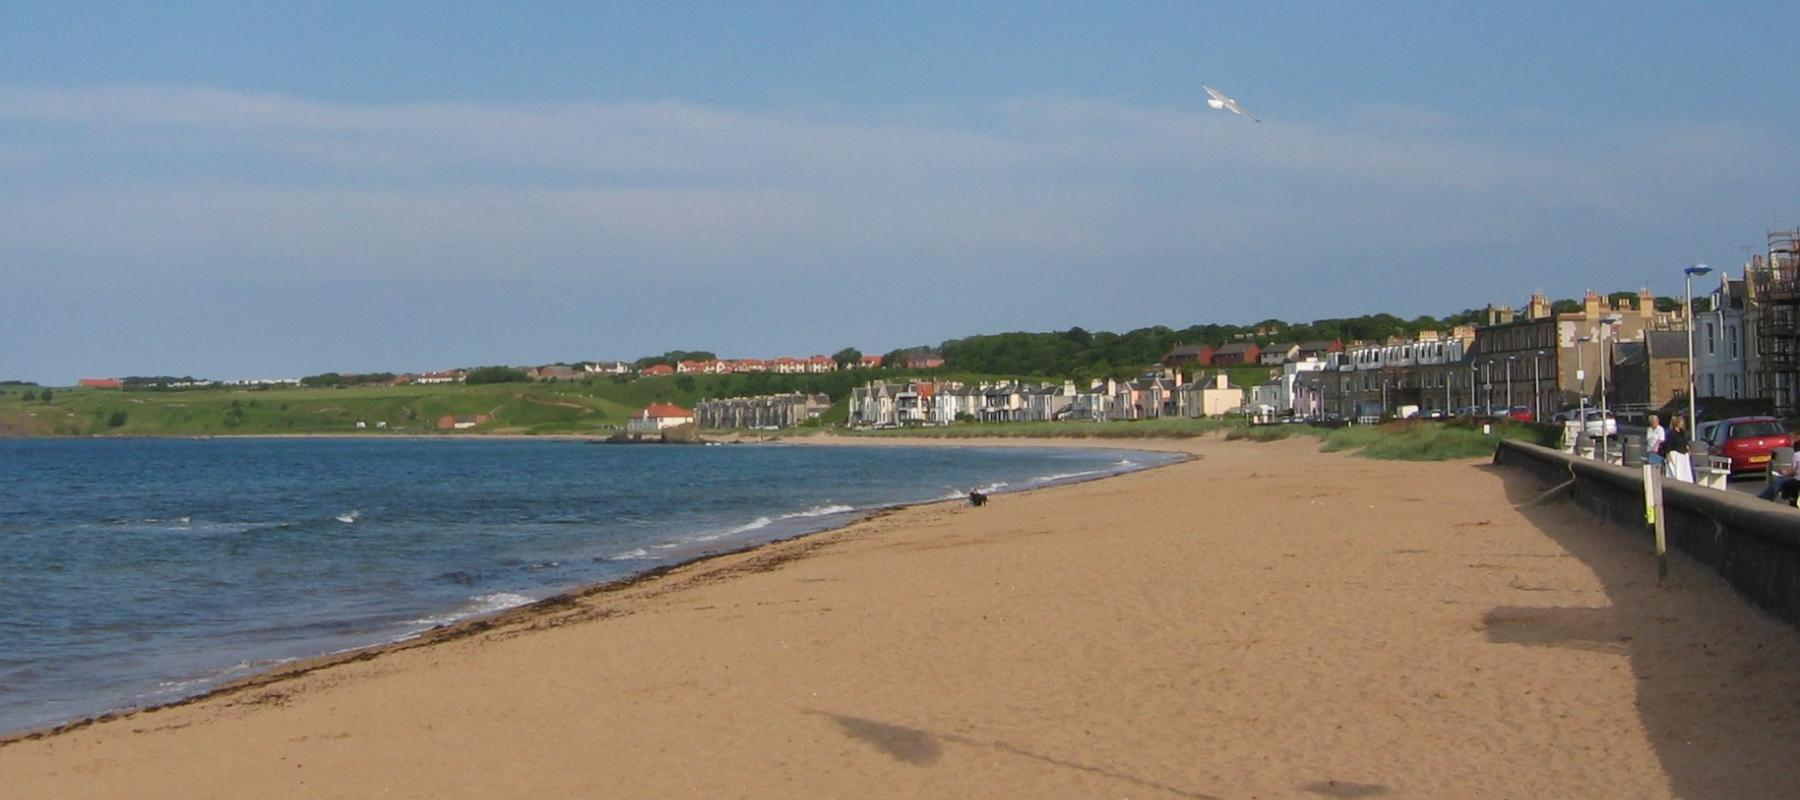 East Beach at North Berwick along the East Lothian Line